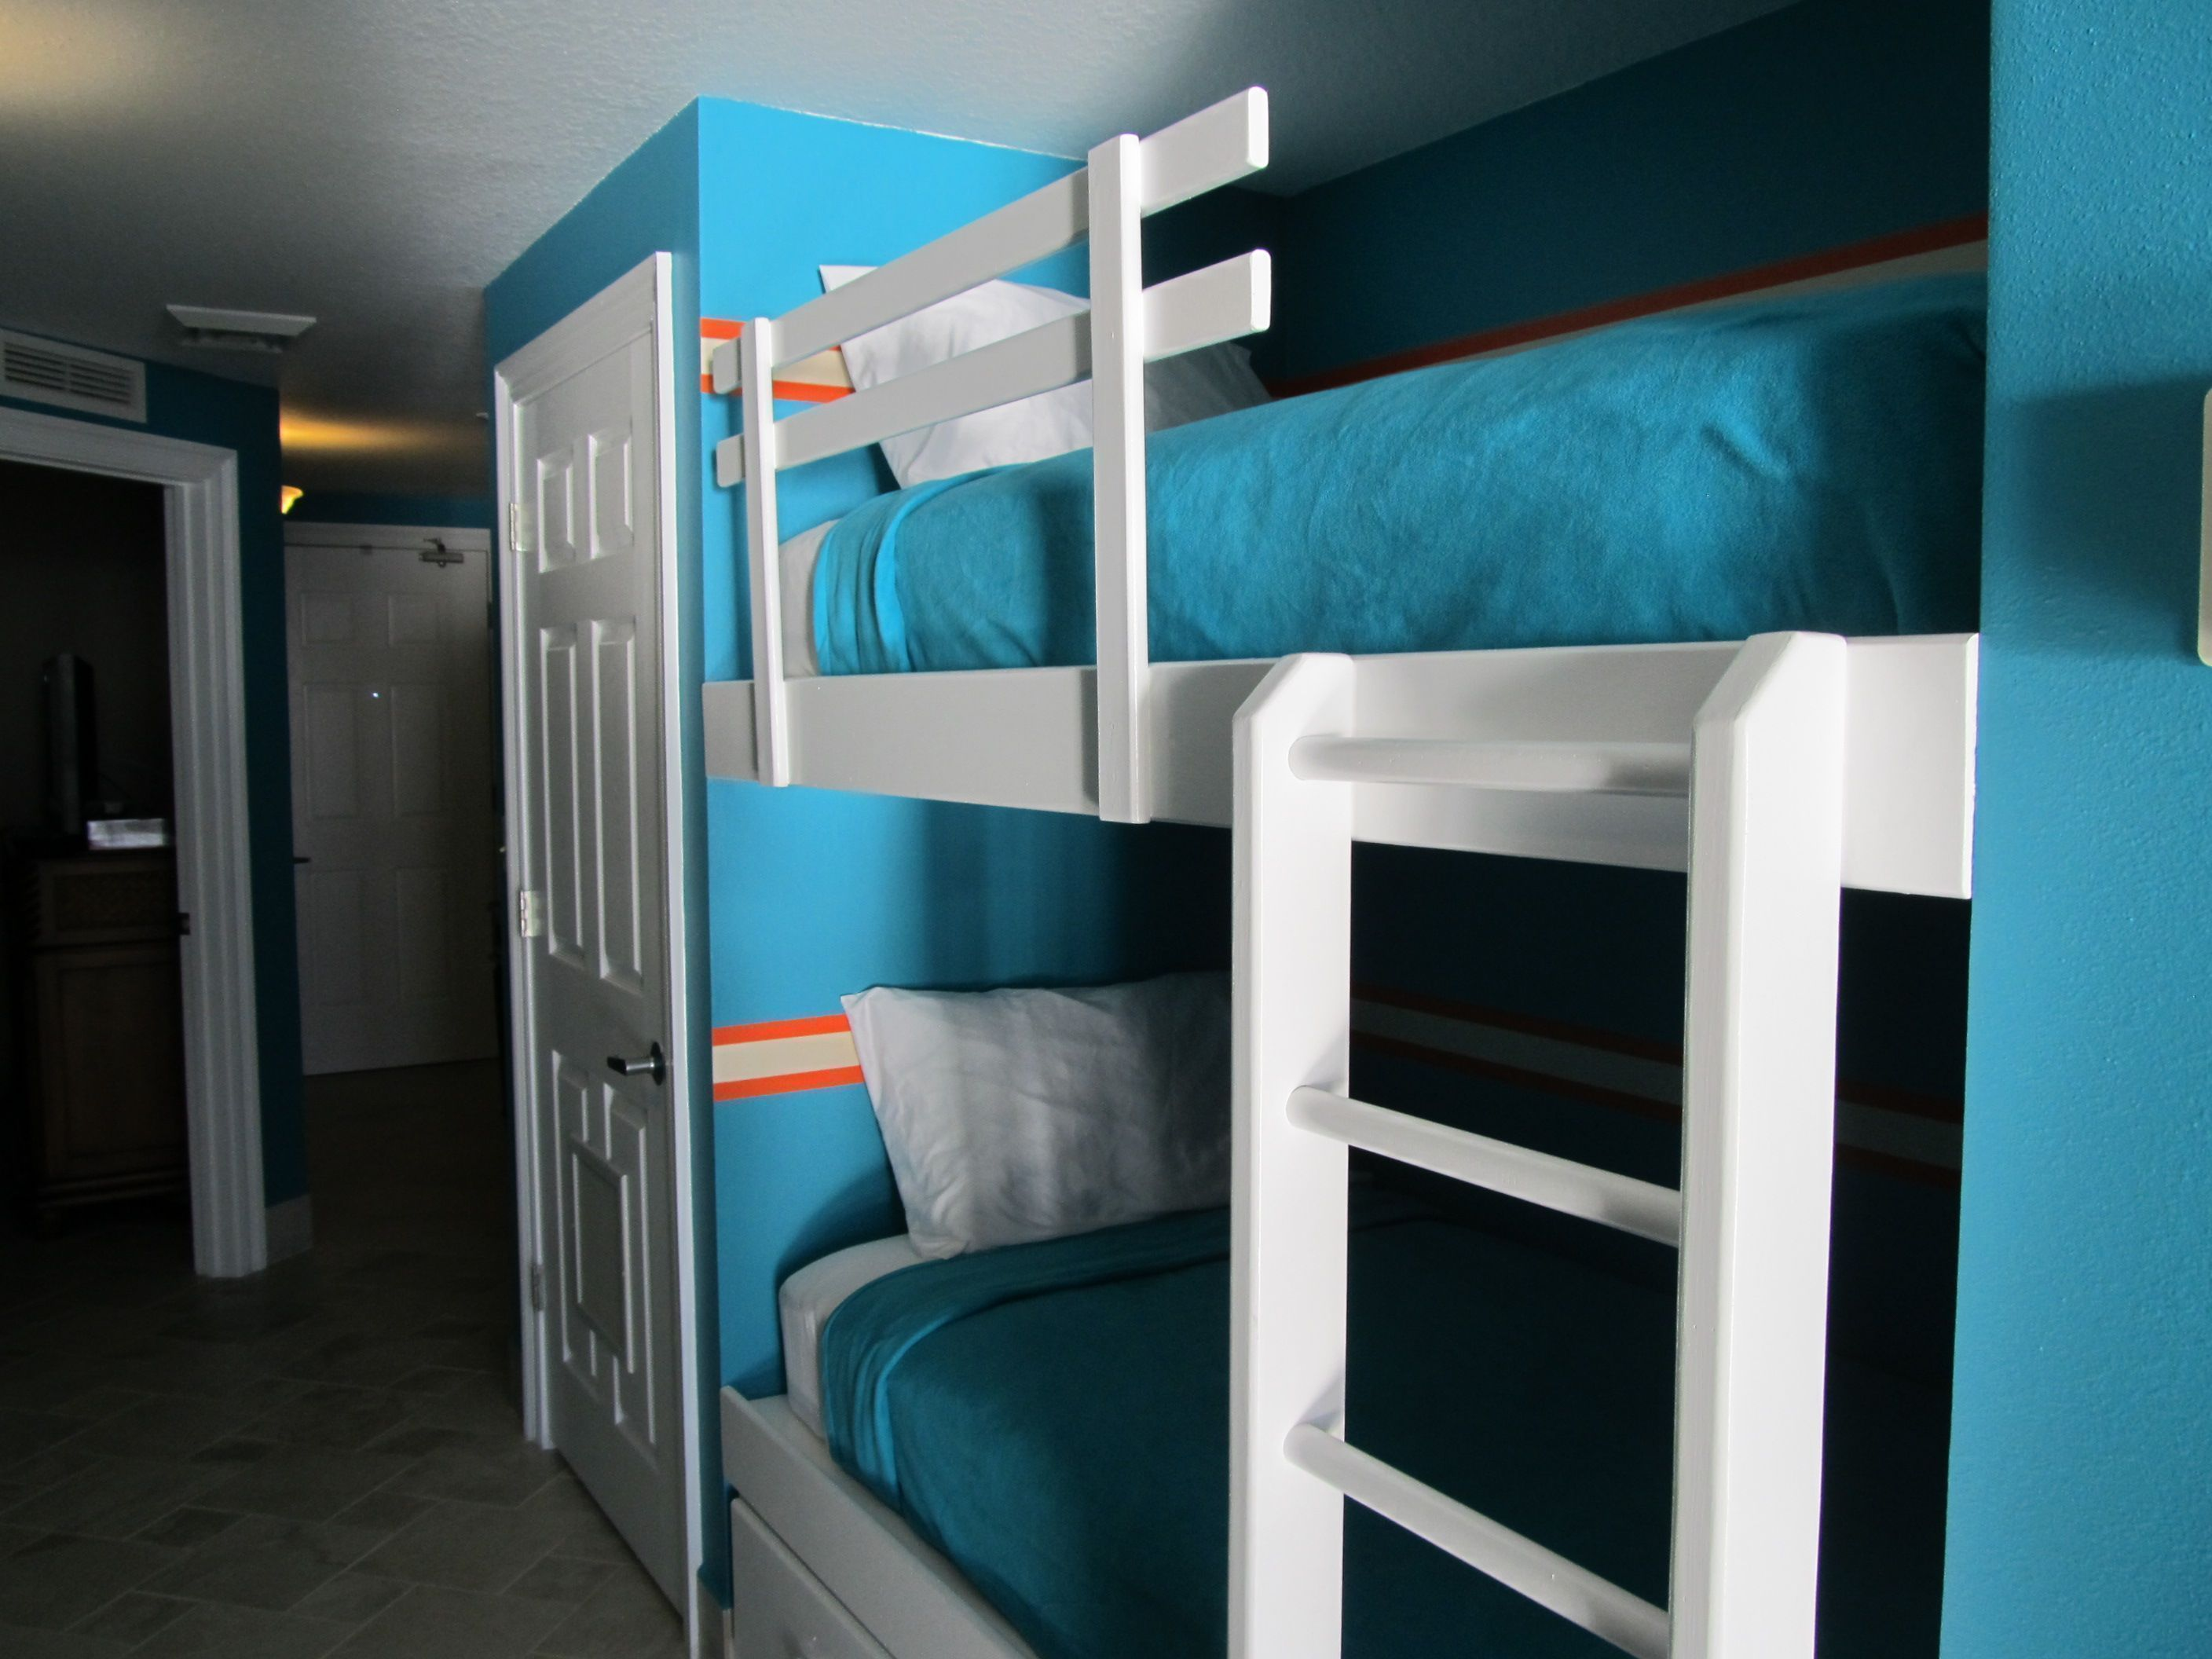 Hallway storage next  Twin bunks in hallway Newly painted wood Brand new mattresses are